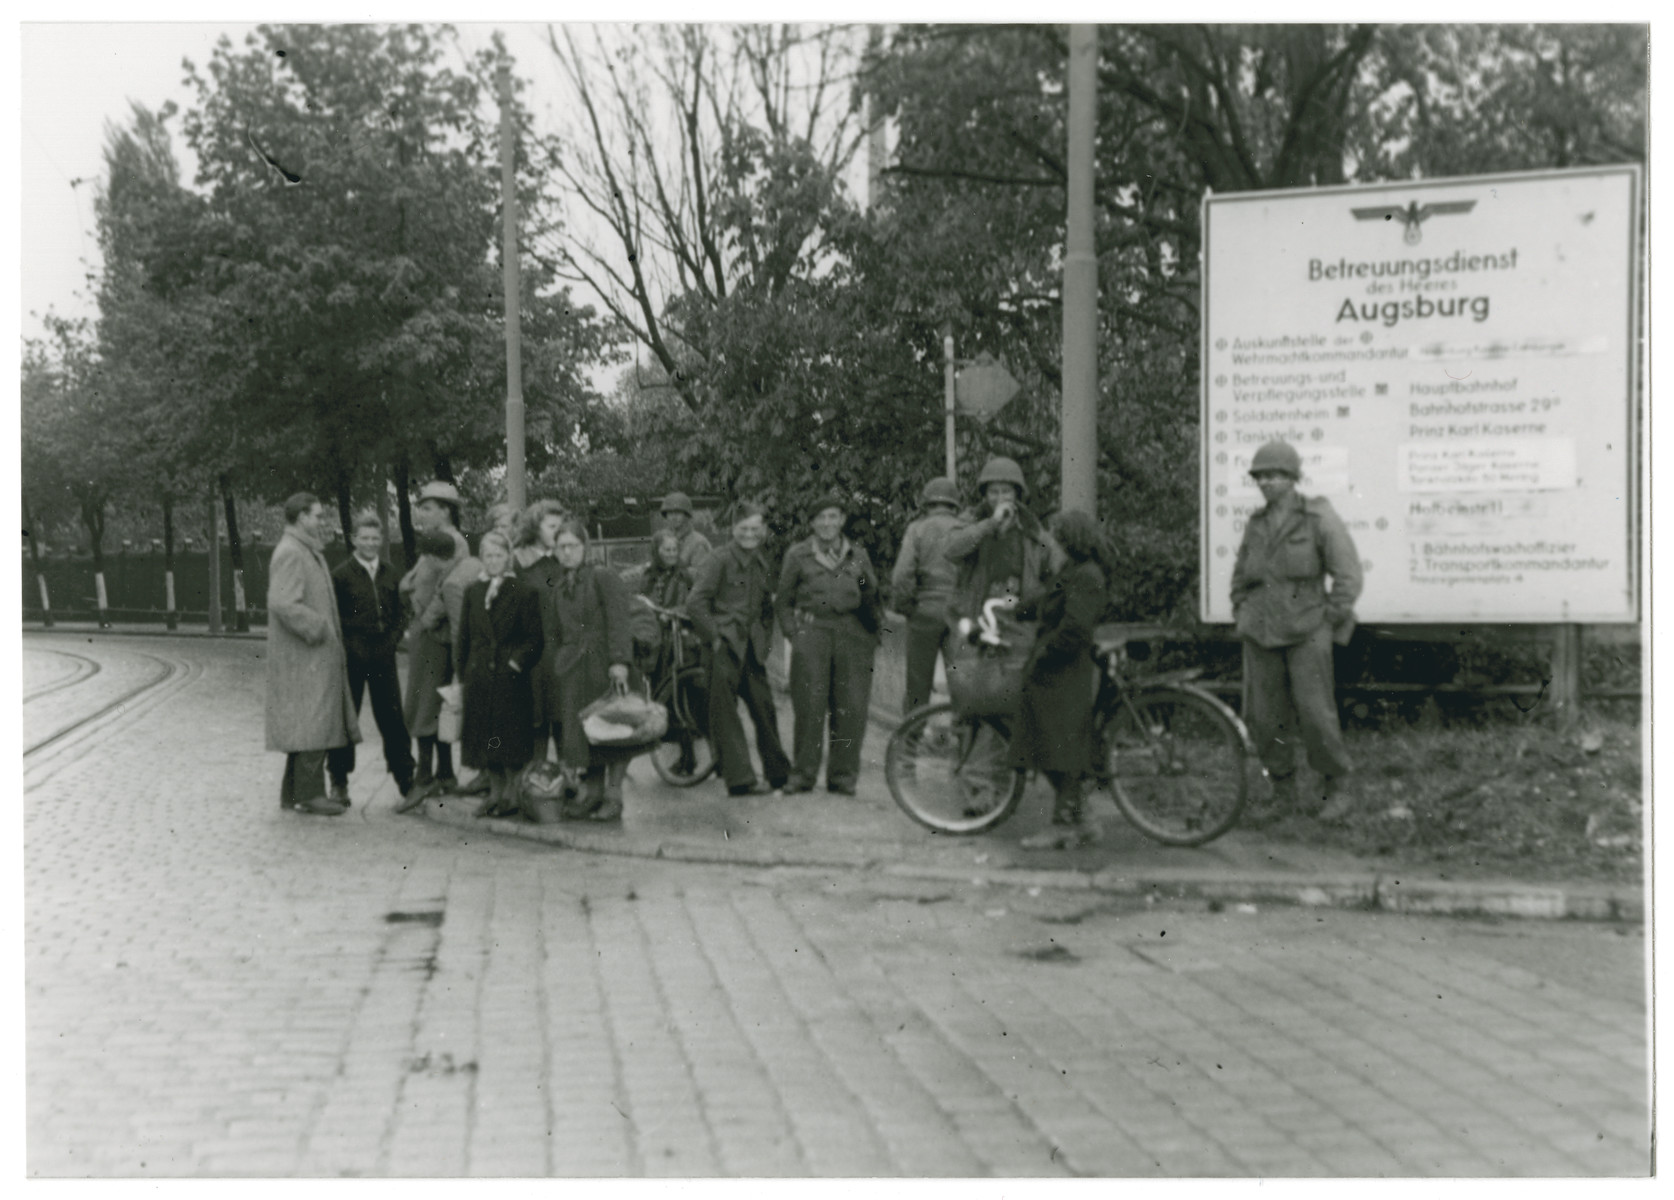 Civilians and American soldiers gather on a street corner of Augsburg in front of a sign with a Nazi eagle to watch American tanks removing obstacles.